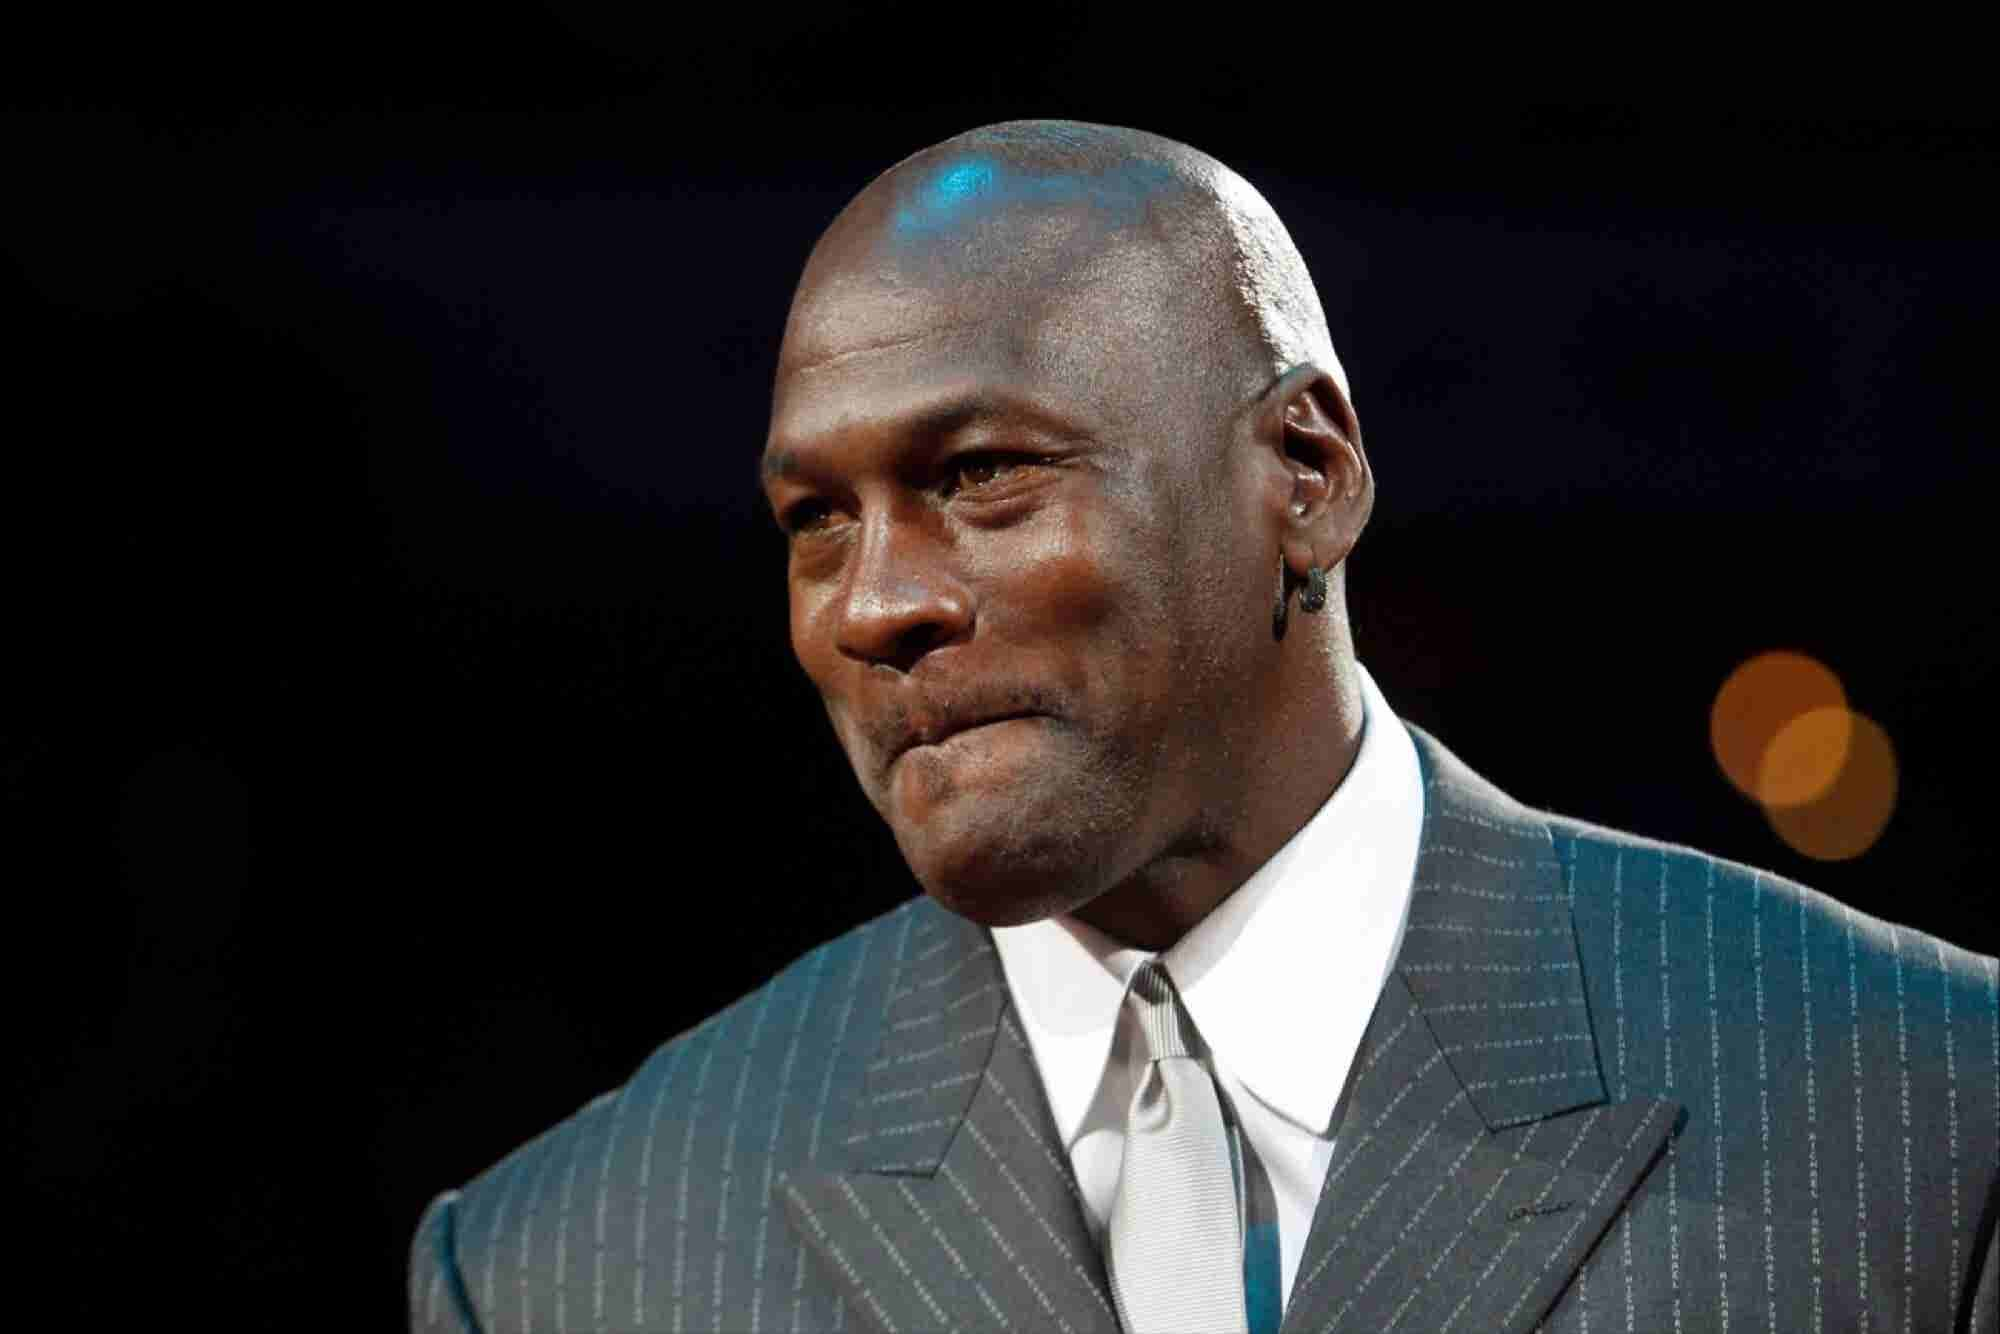 China's Top Court Rules in Michael Jordan's Favor in Trademark Case